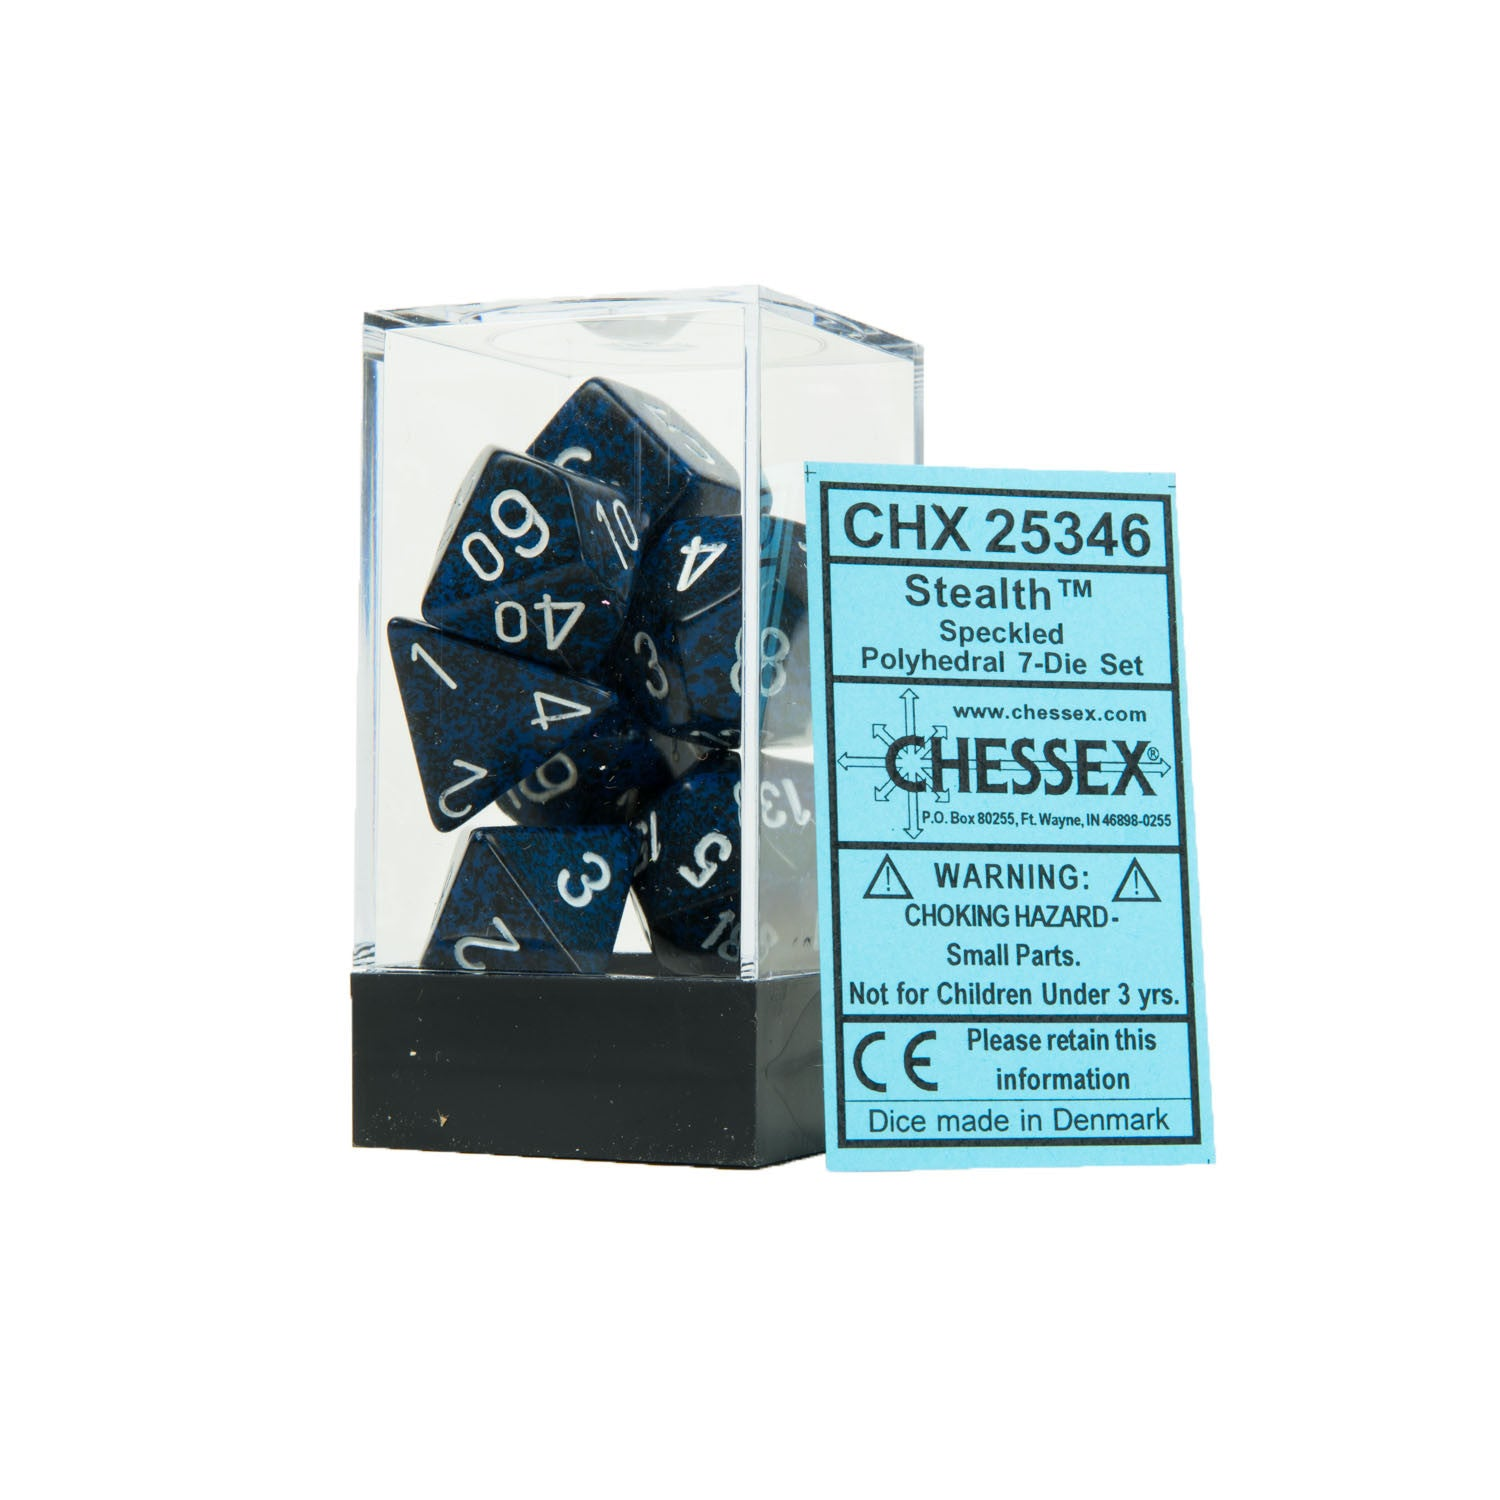 Chessex CHX25346 Stealth™ Speckled Polyhedral Dice Set